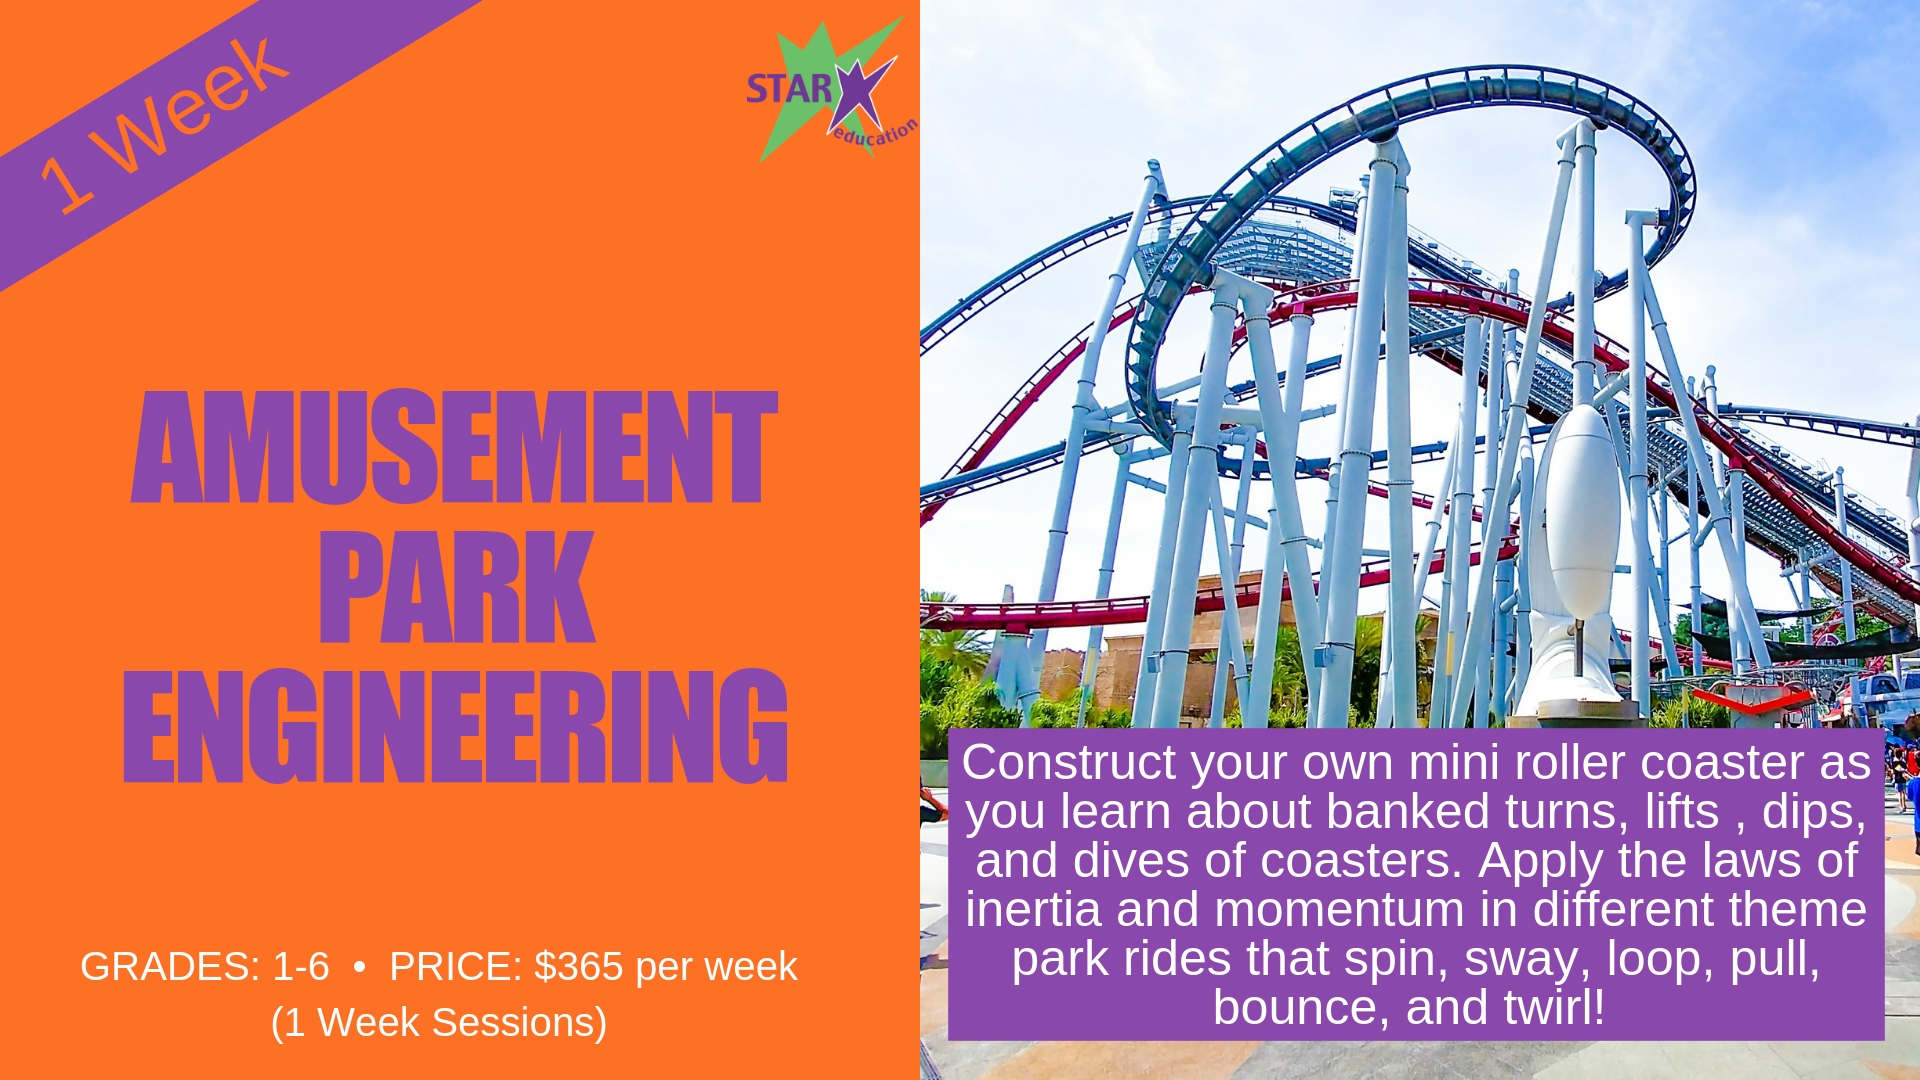 Amusement Park Engineering.jpg